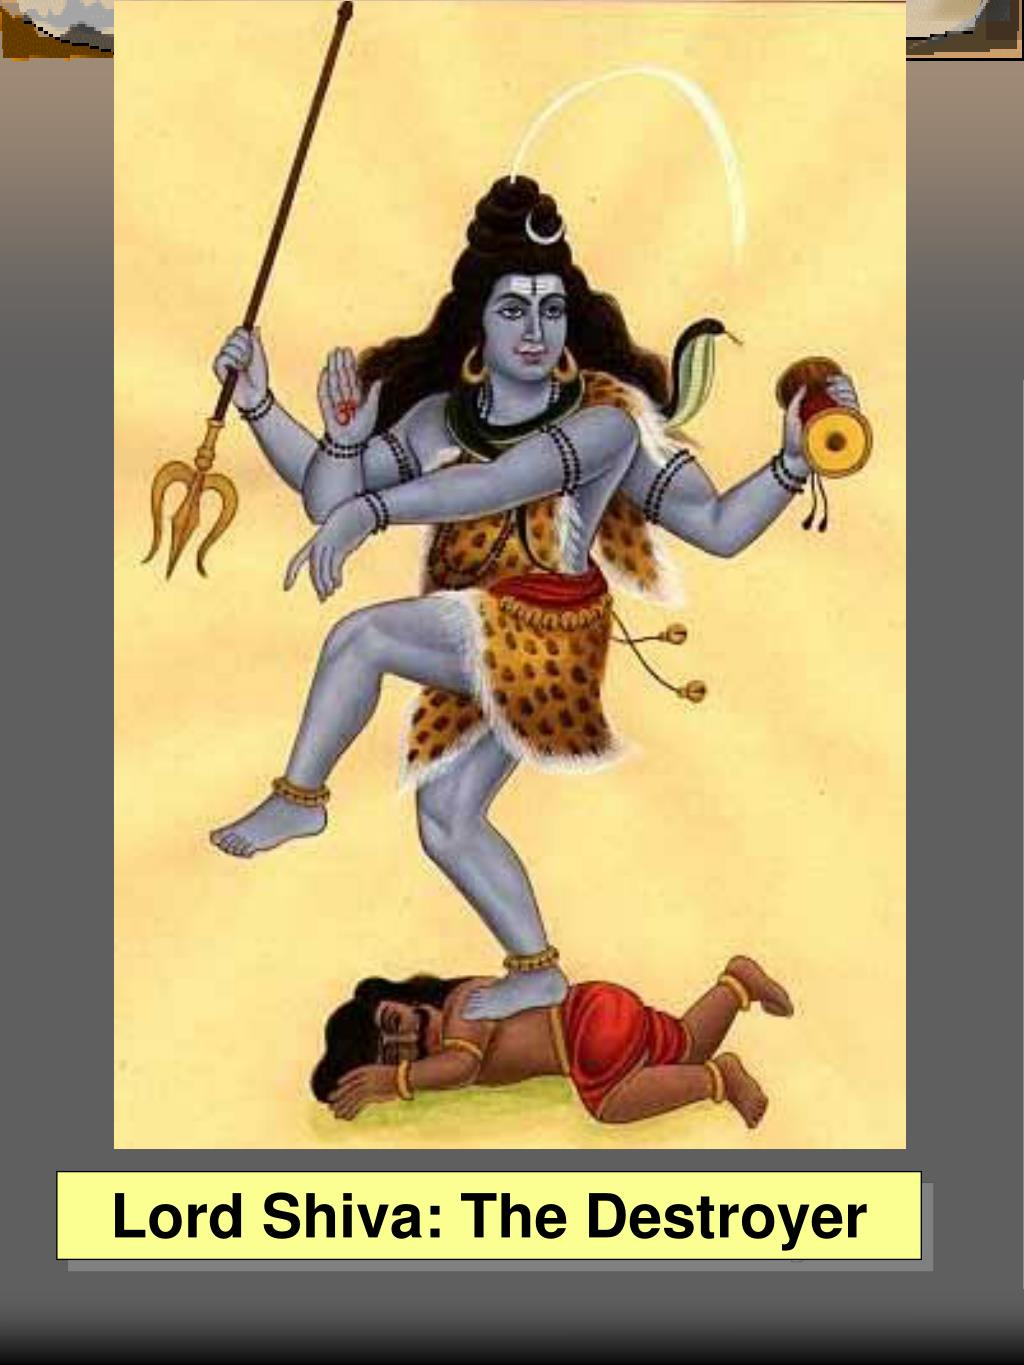 Lord Shiva: The Destroyer